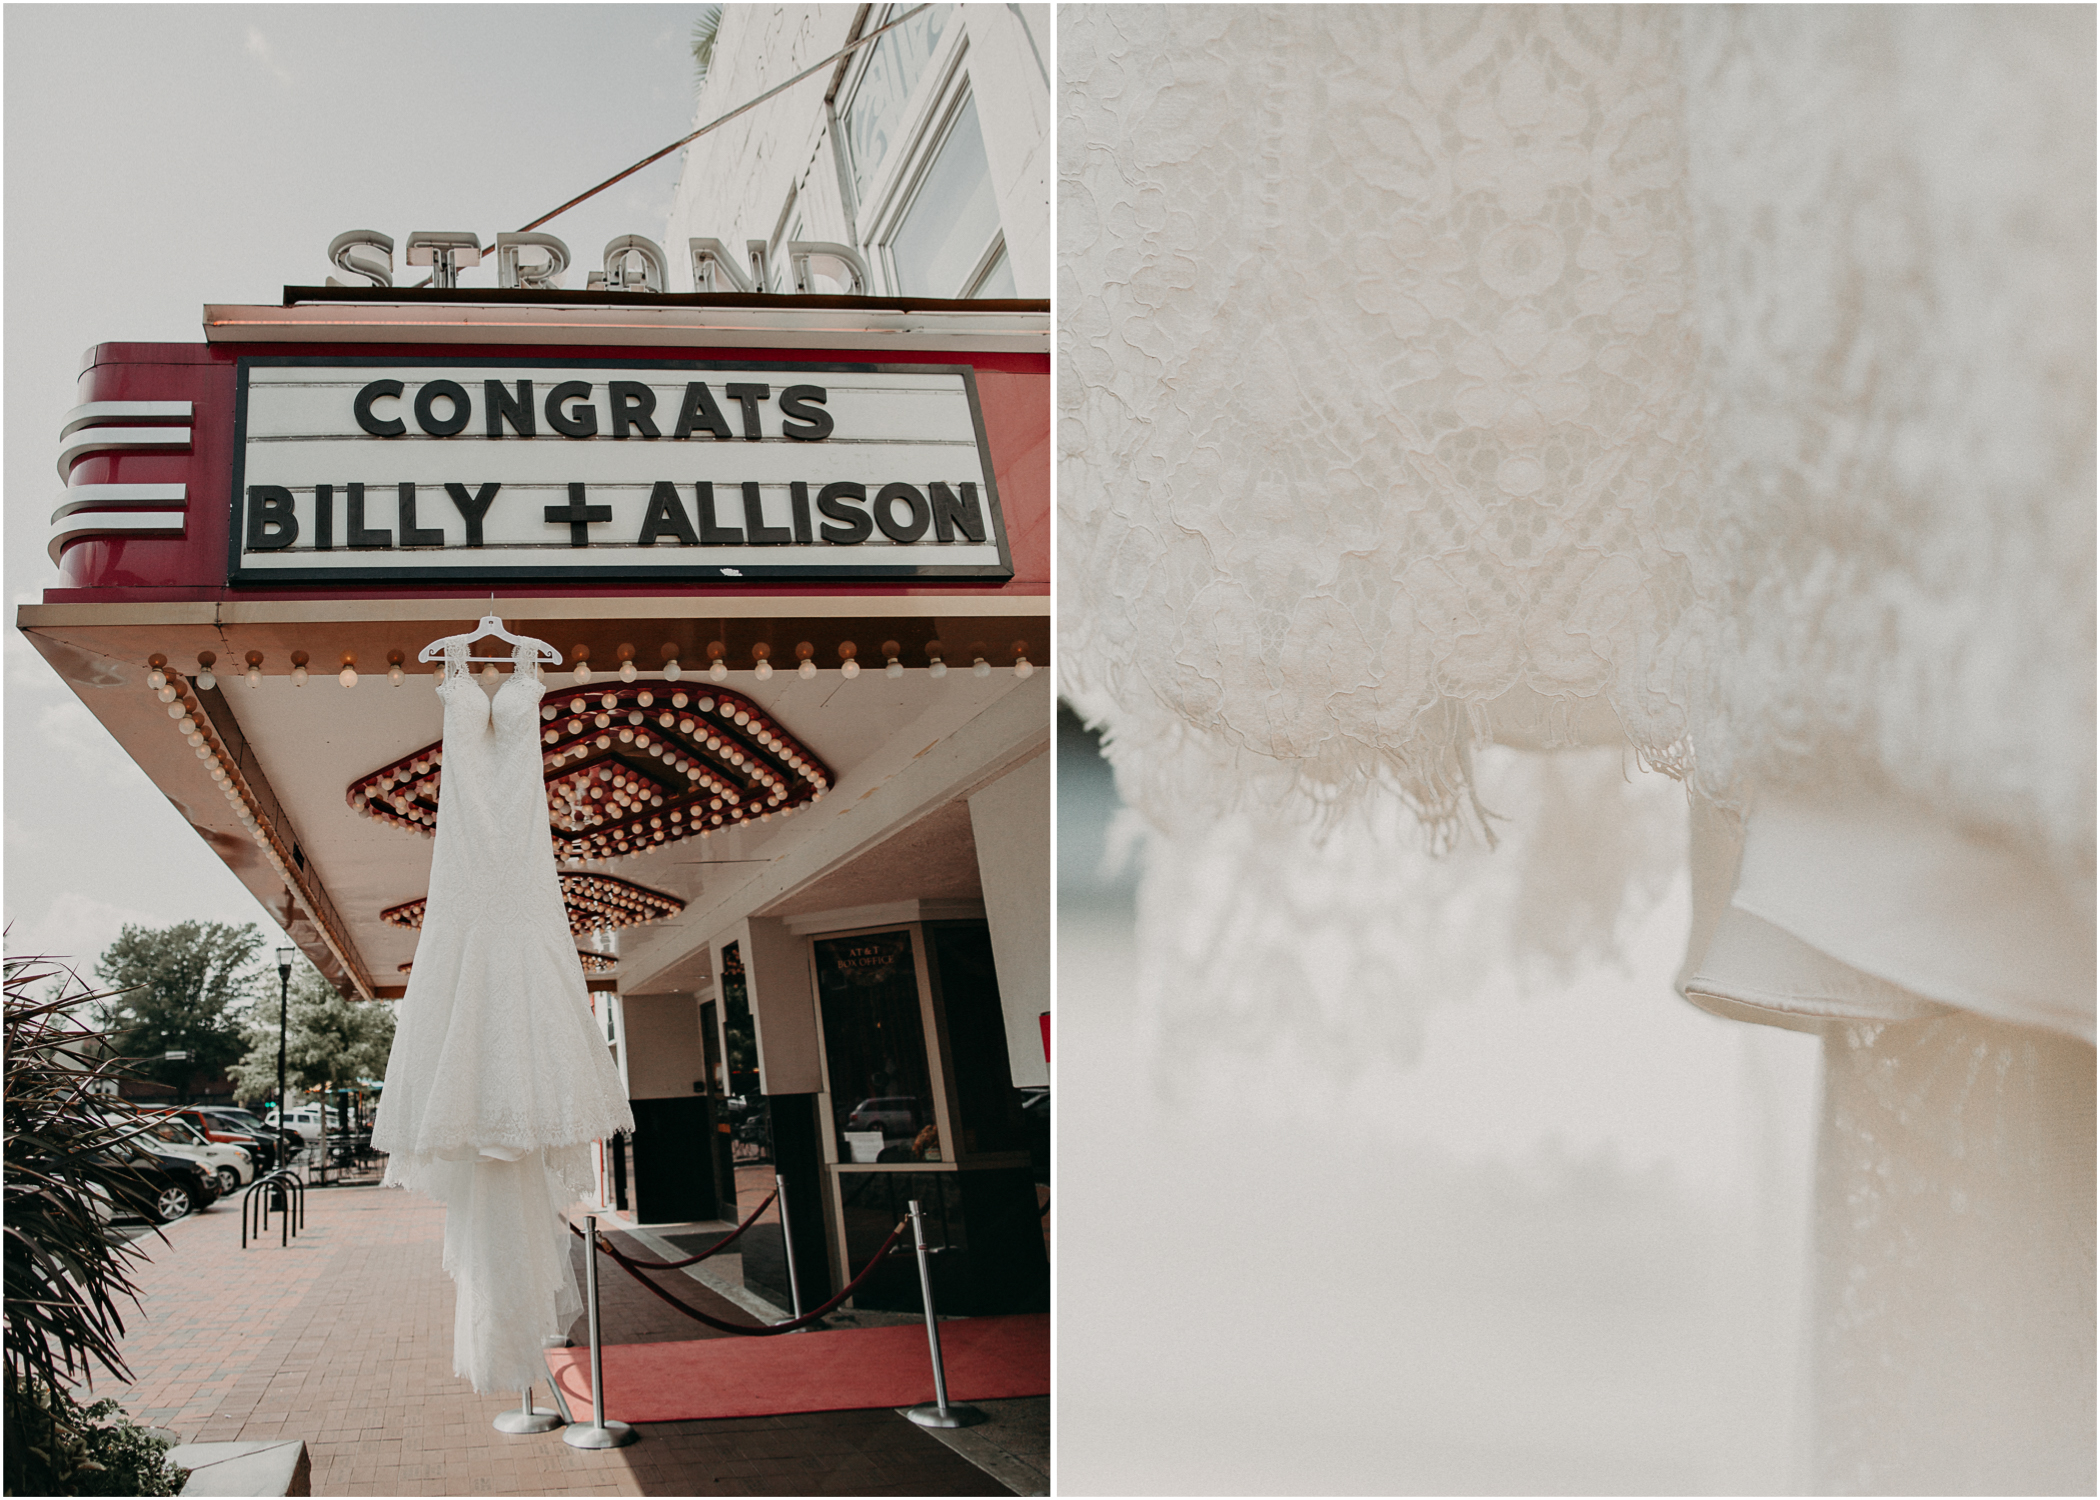 Allison and Billy - earlsmithstrand_marietta square georgia wedding photography-2.jpg